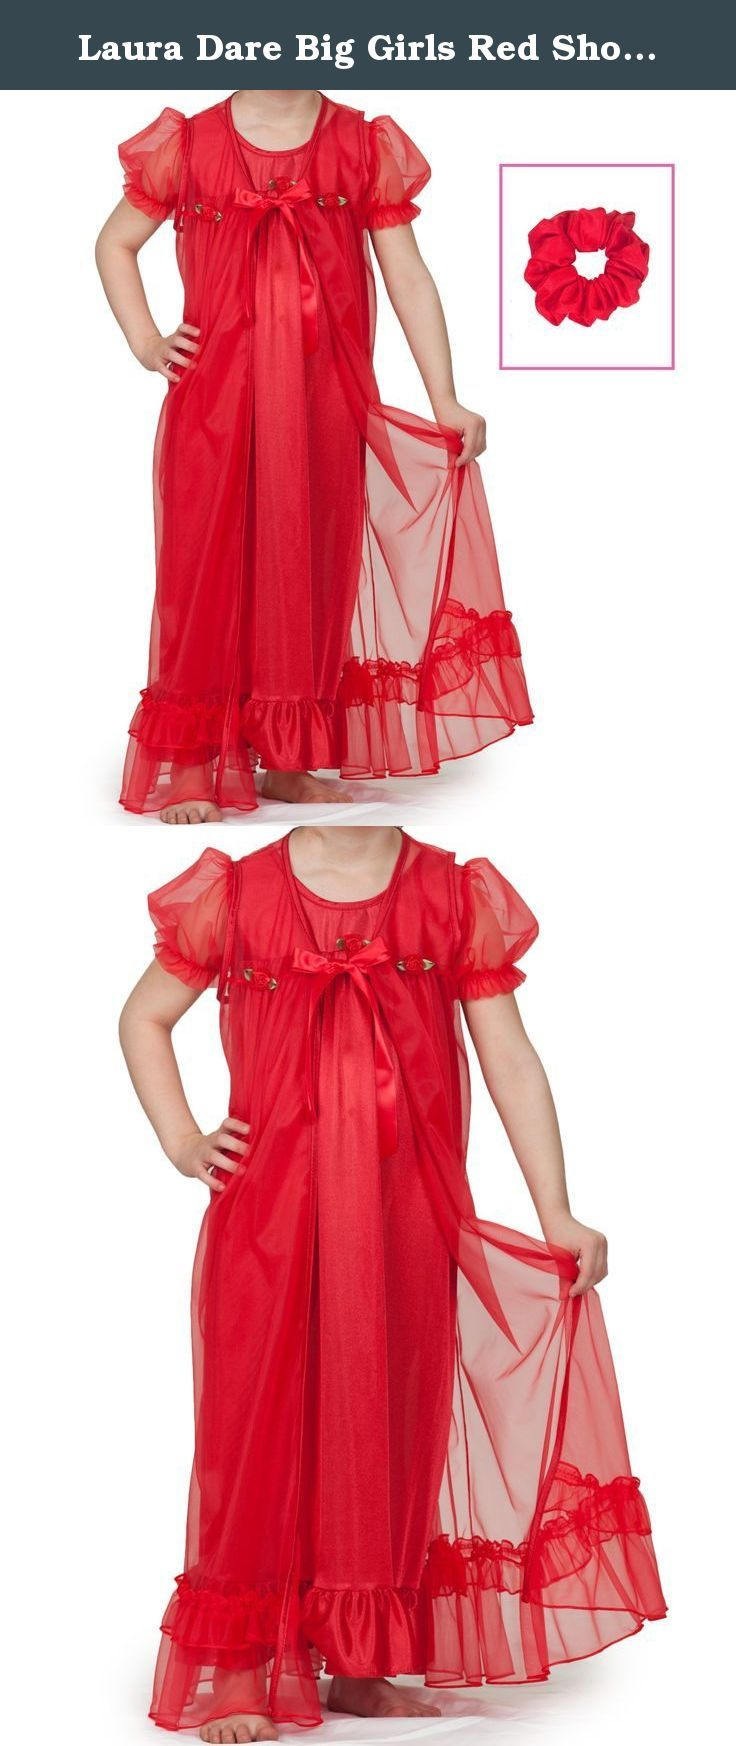 8996910510 Laura Dare Big Girls Red Short Sleeve Peignoir Nightgown w Scrunchie ...